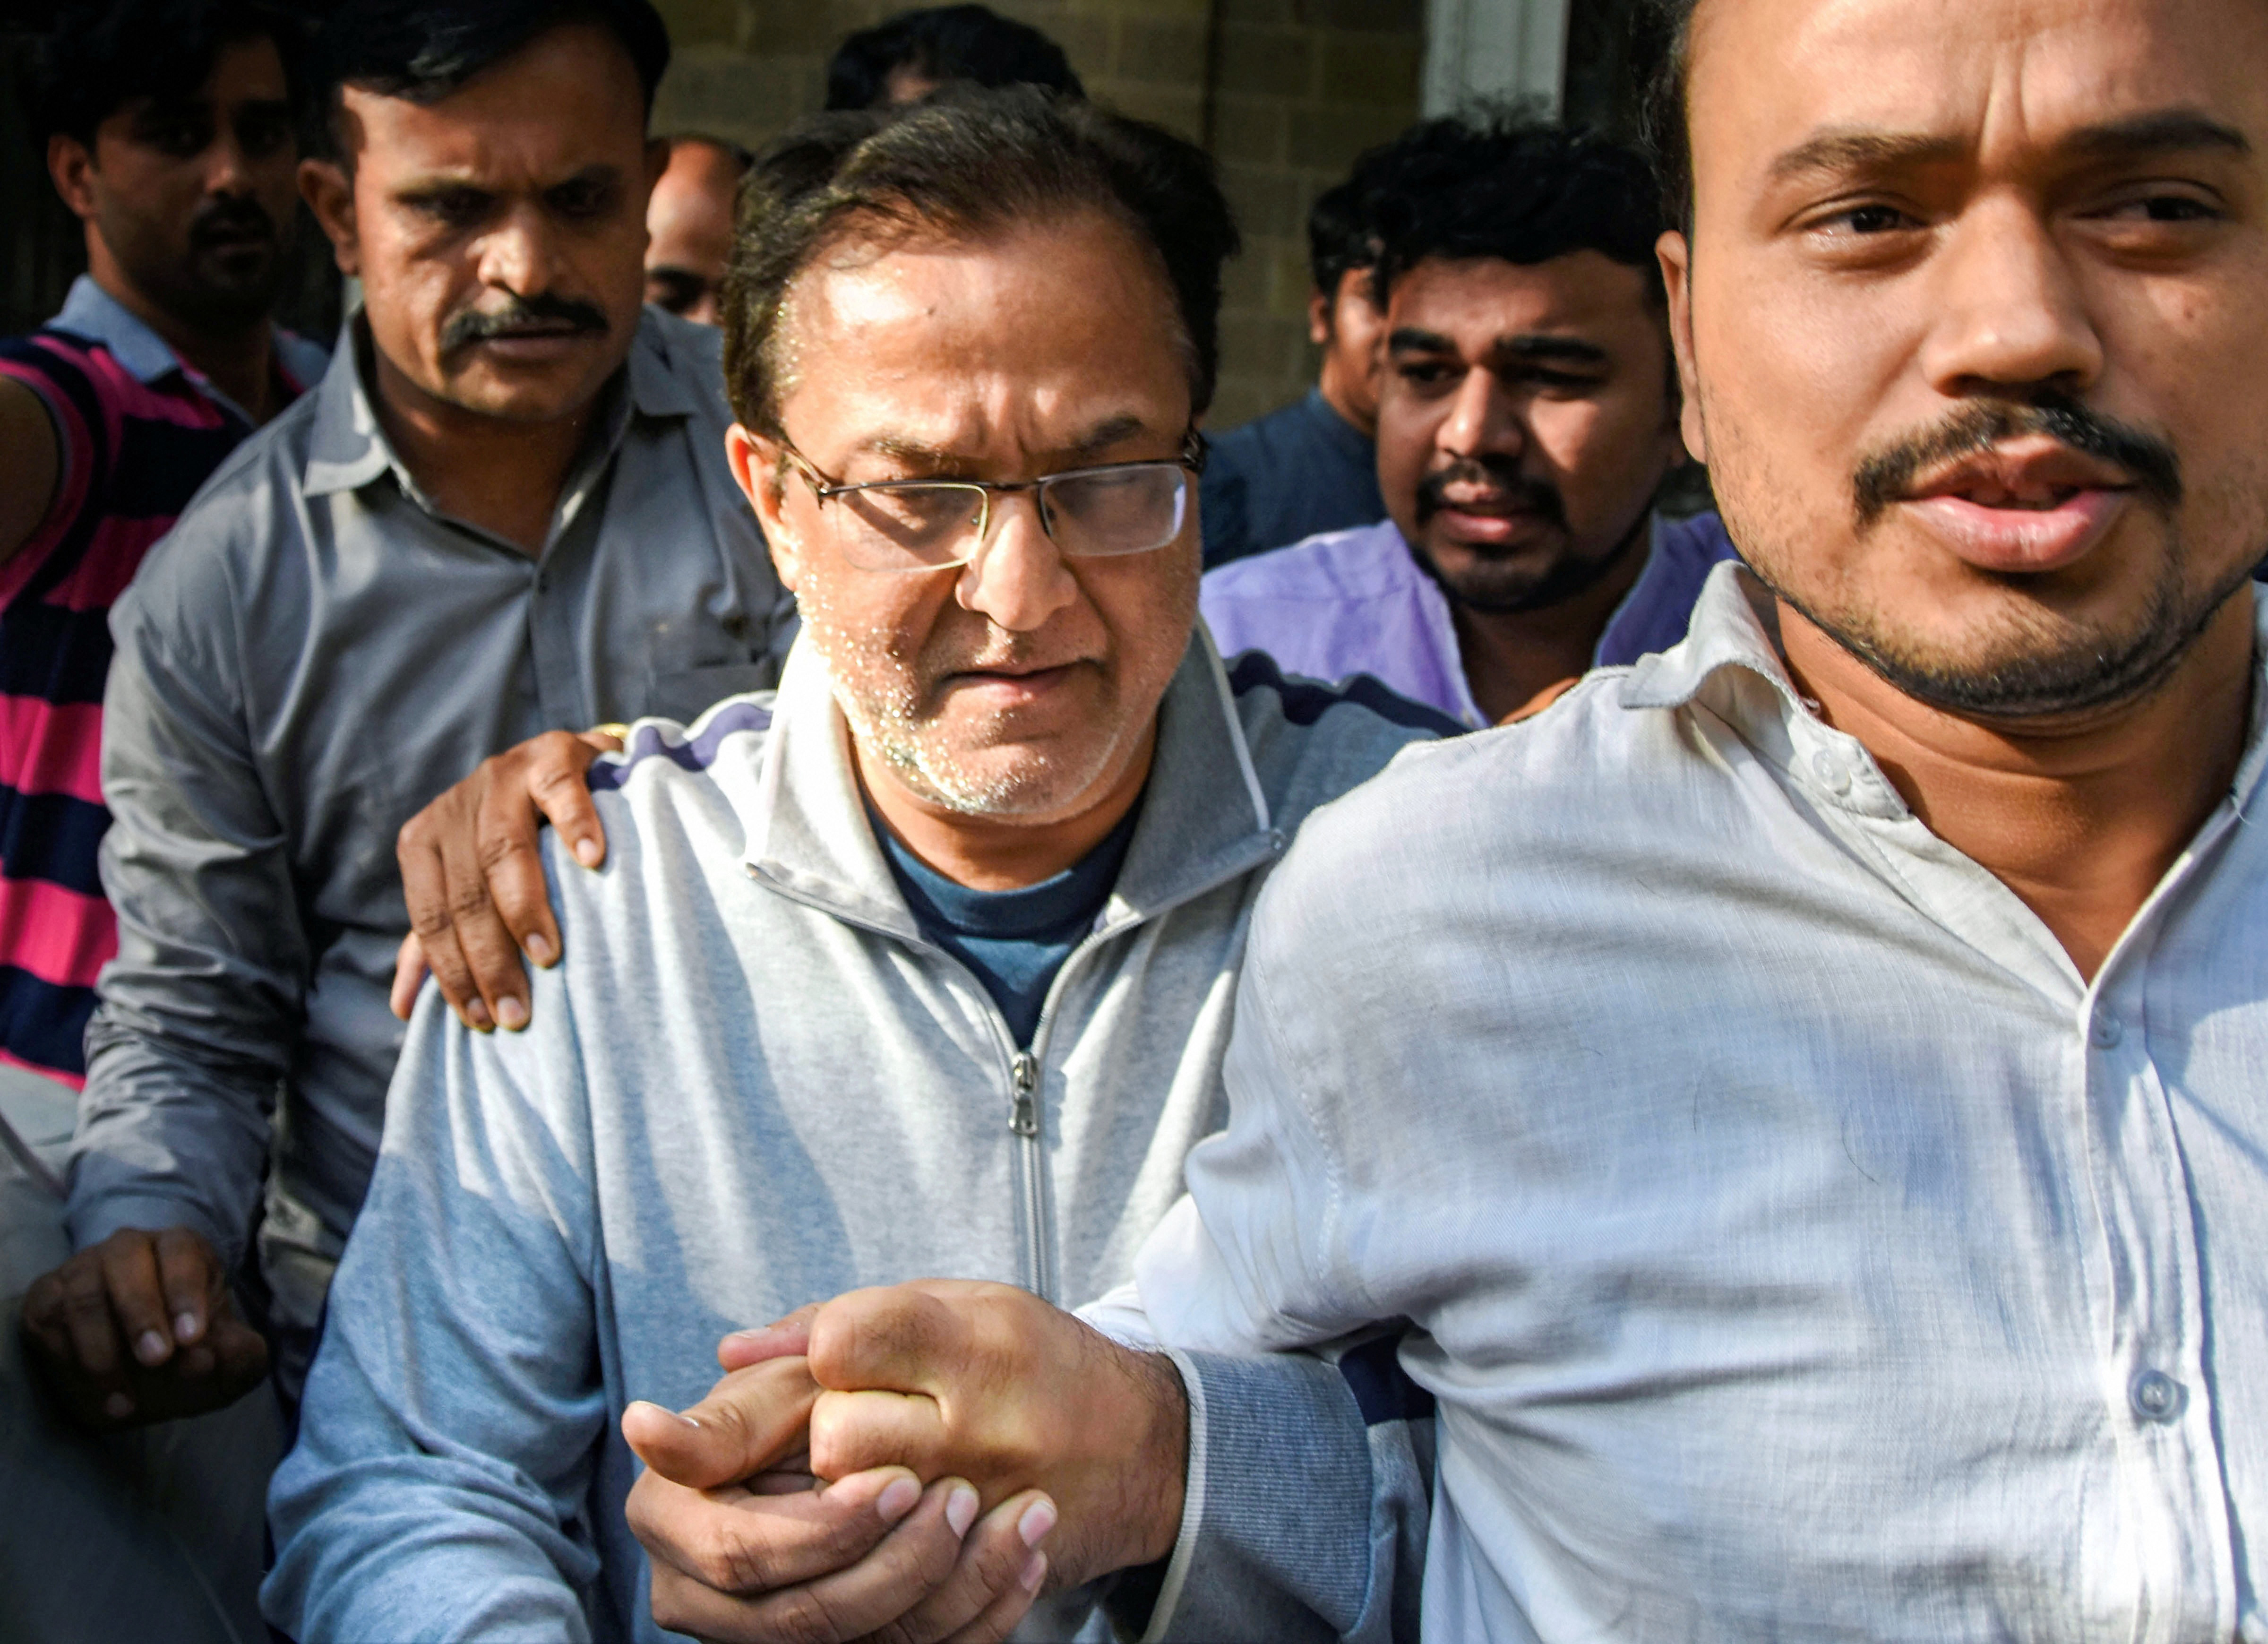 Yes Bank founder Rana Kapoor being taken to a court after being arrested by Enforcement Directorate under money laundering charges, in Mumbai, Sunday, March 8, 2020